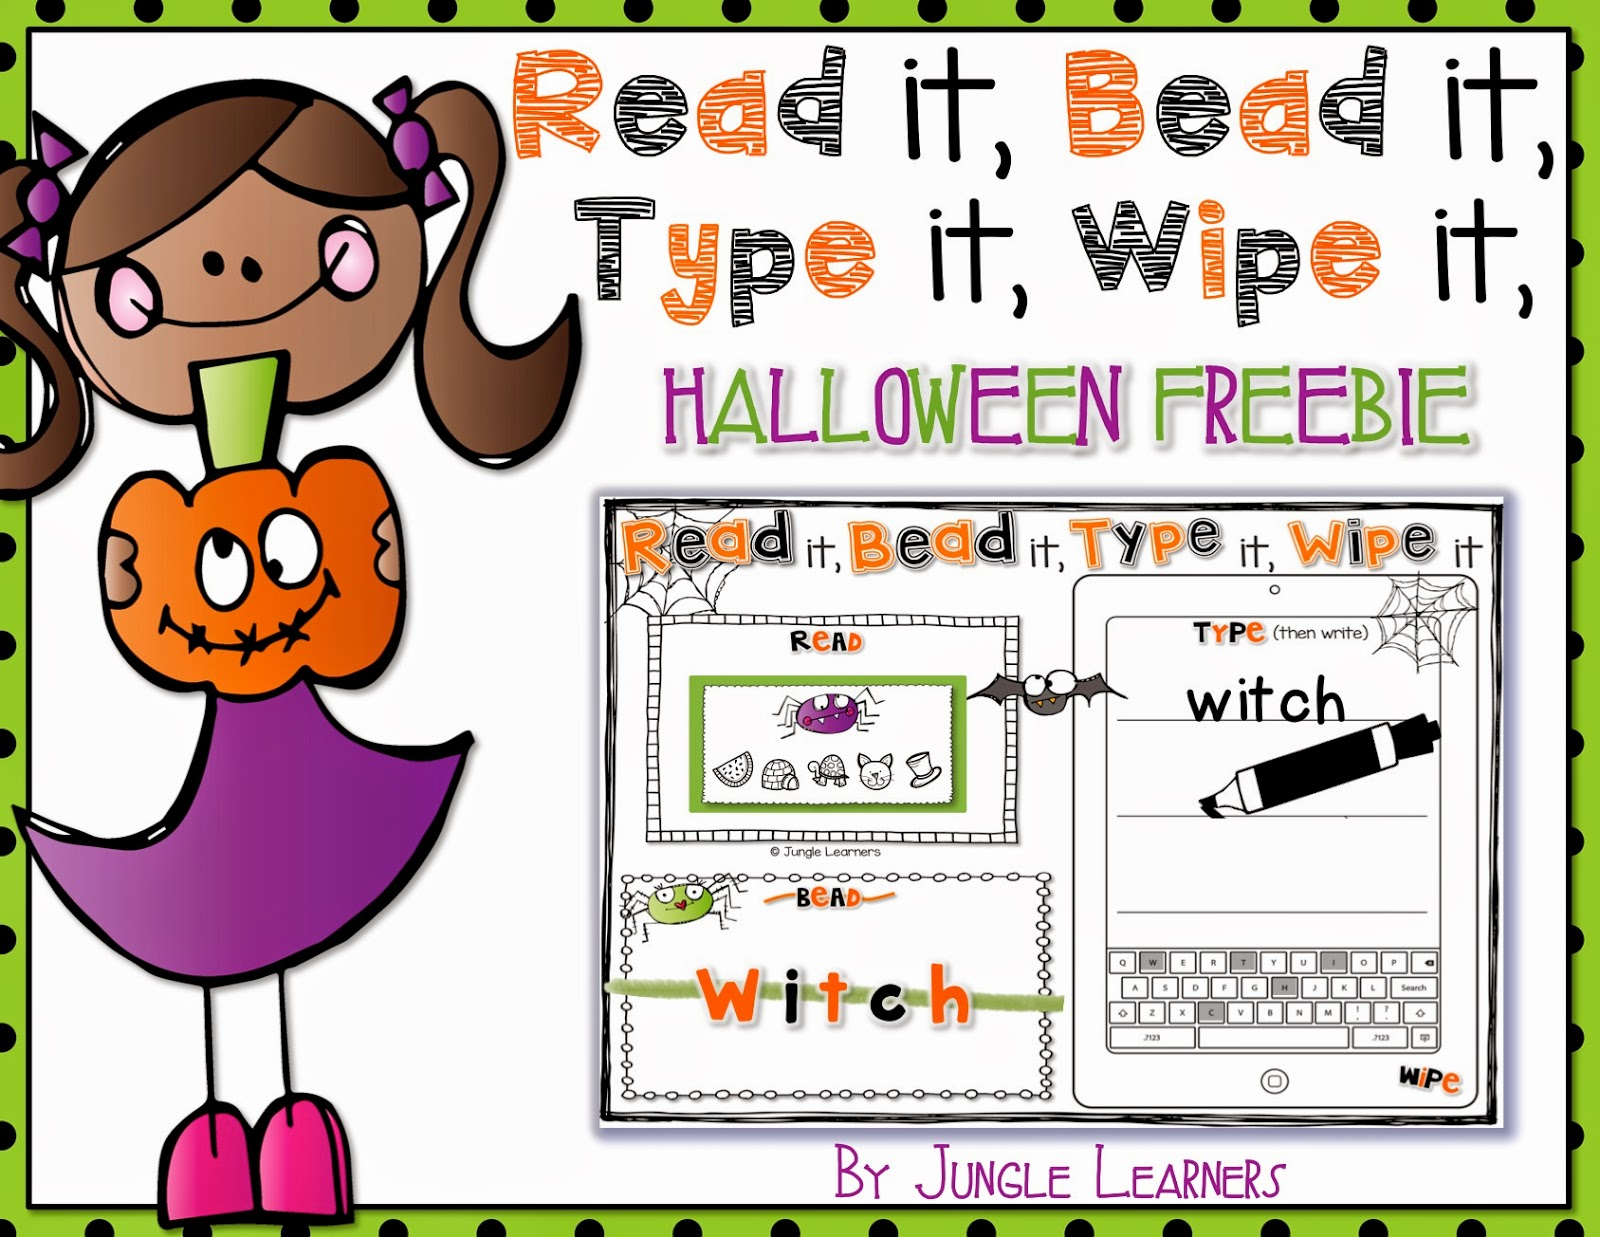 Read it, Bead it, Type it, Wipe it [Halloween Edition]